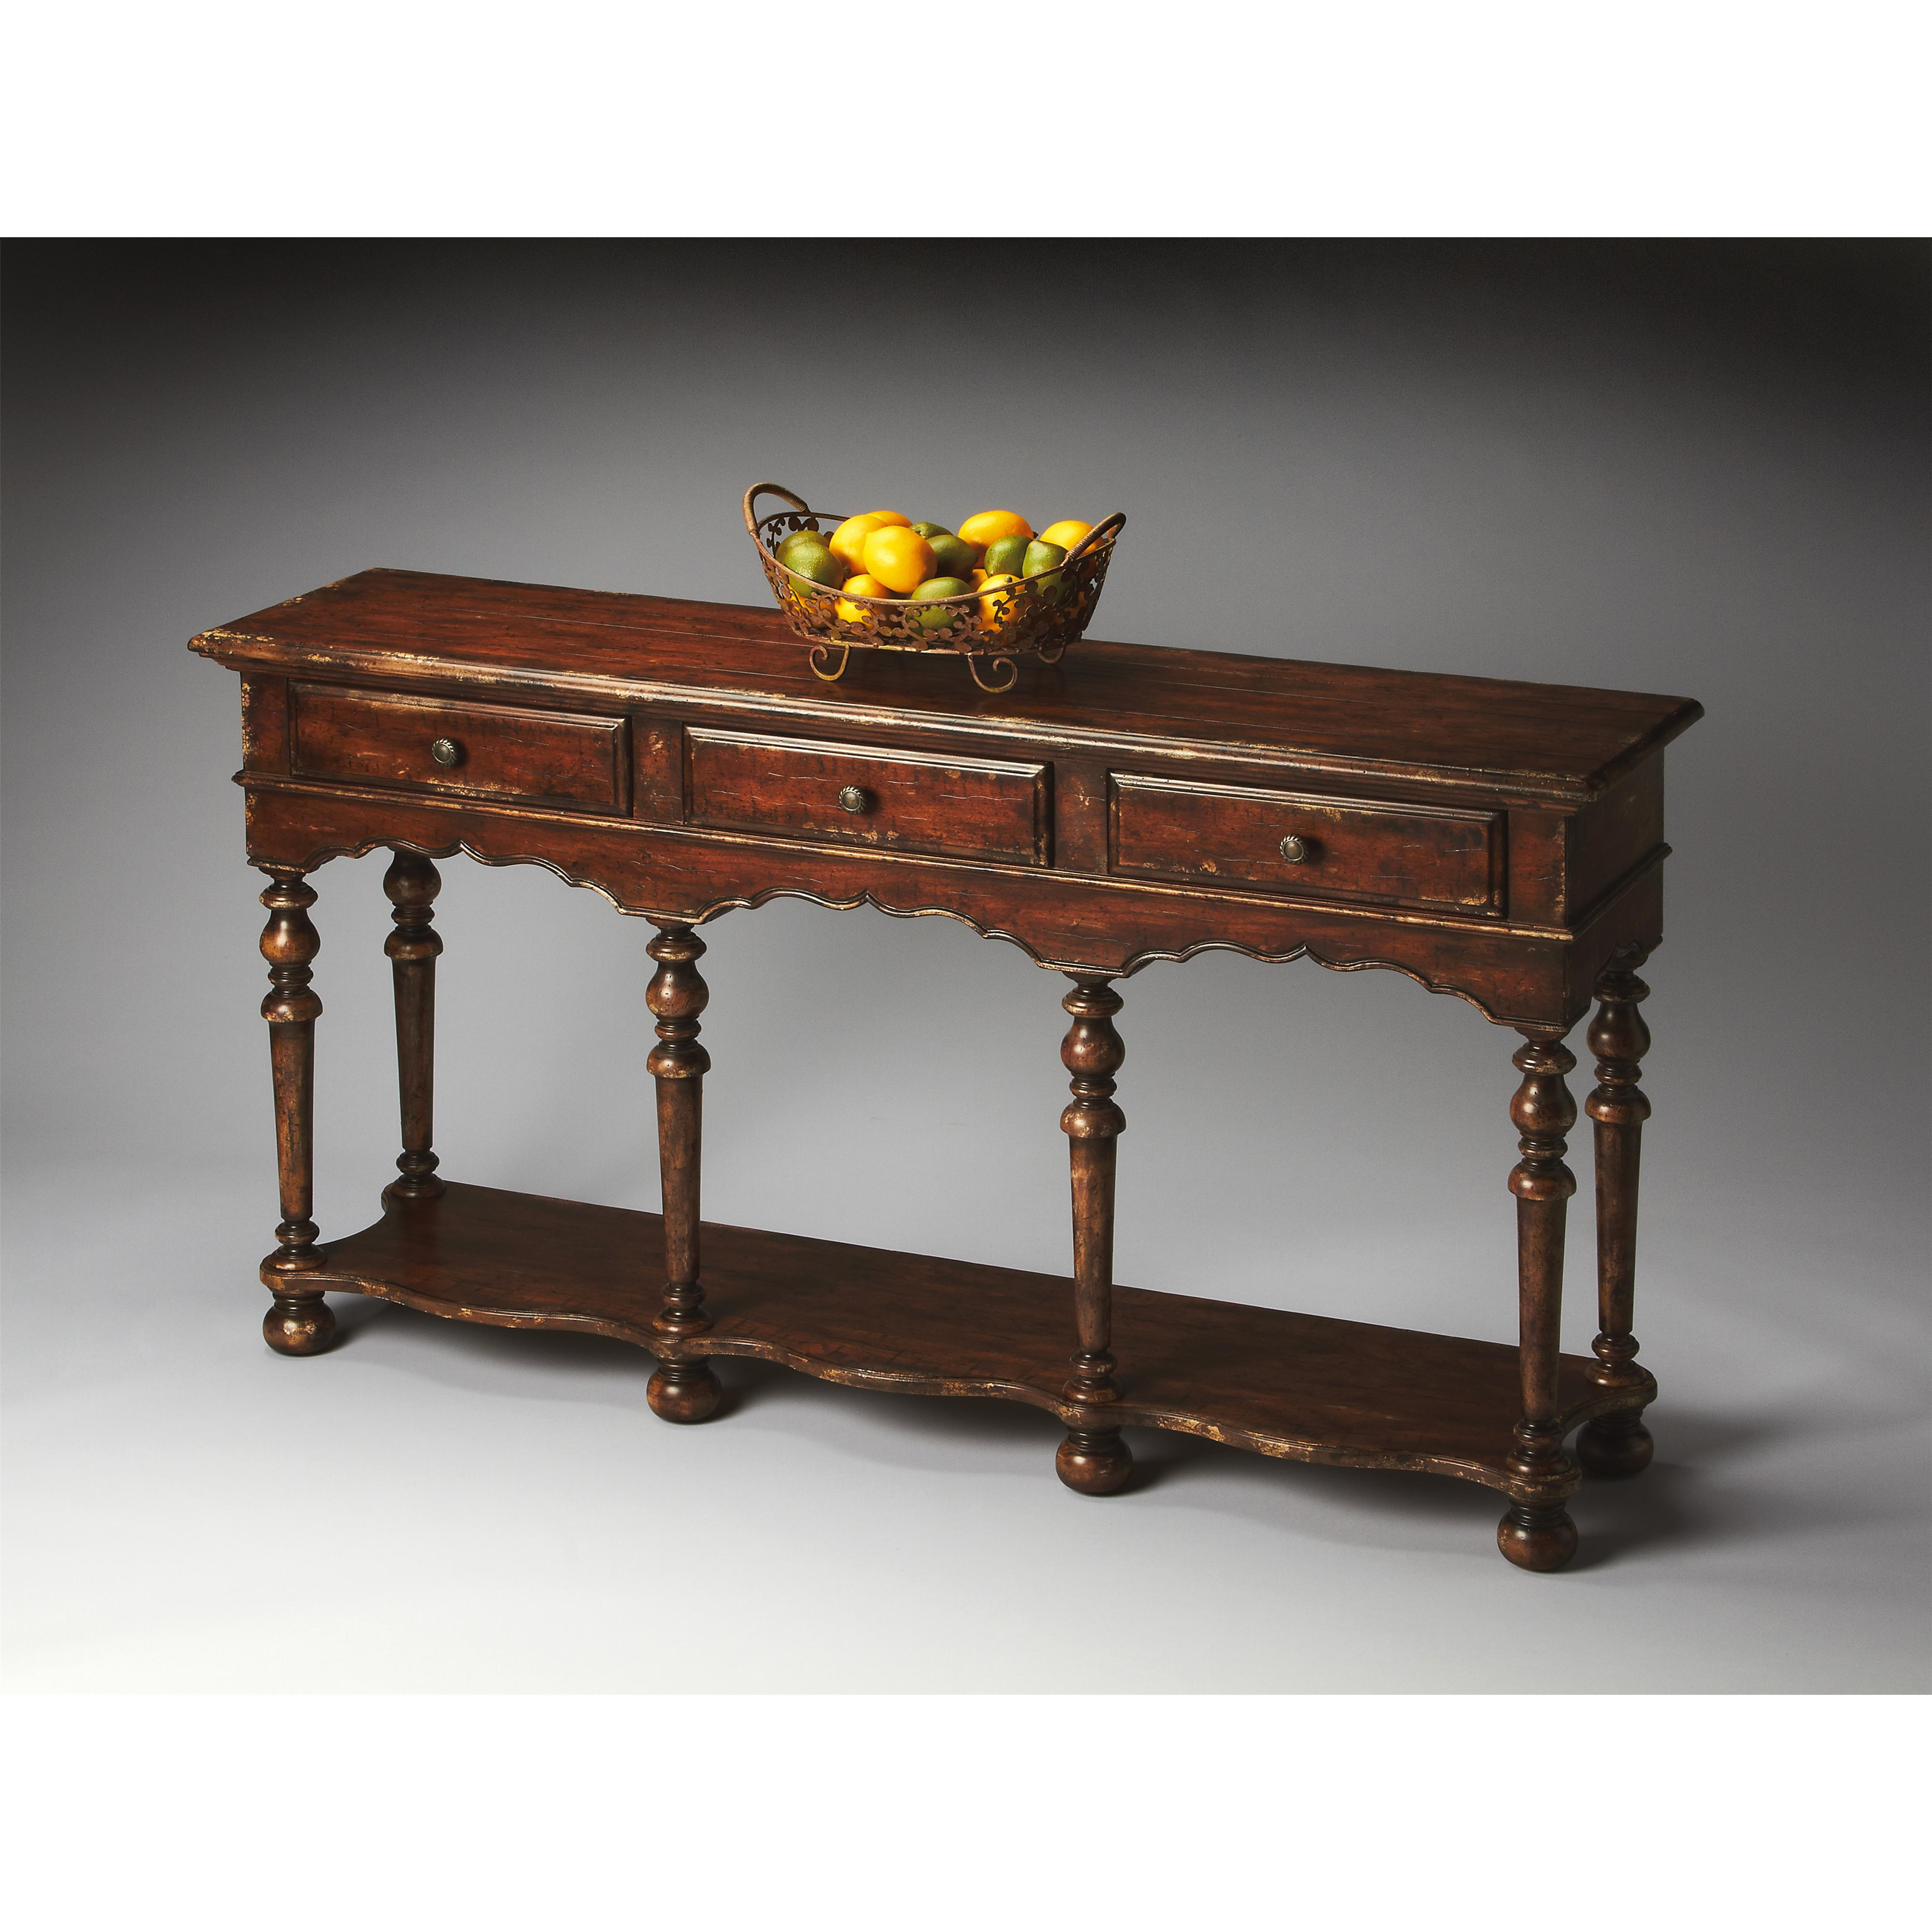 Butler Specialty Company Artist's Originals Console Table - Item Number: 3046228